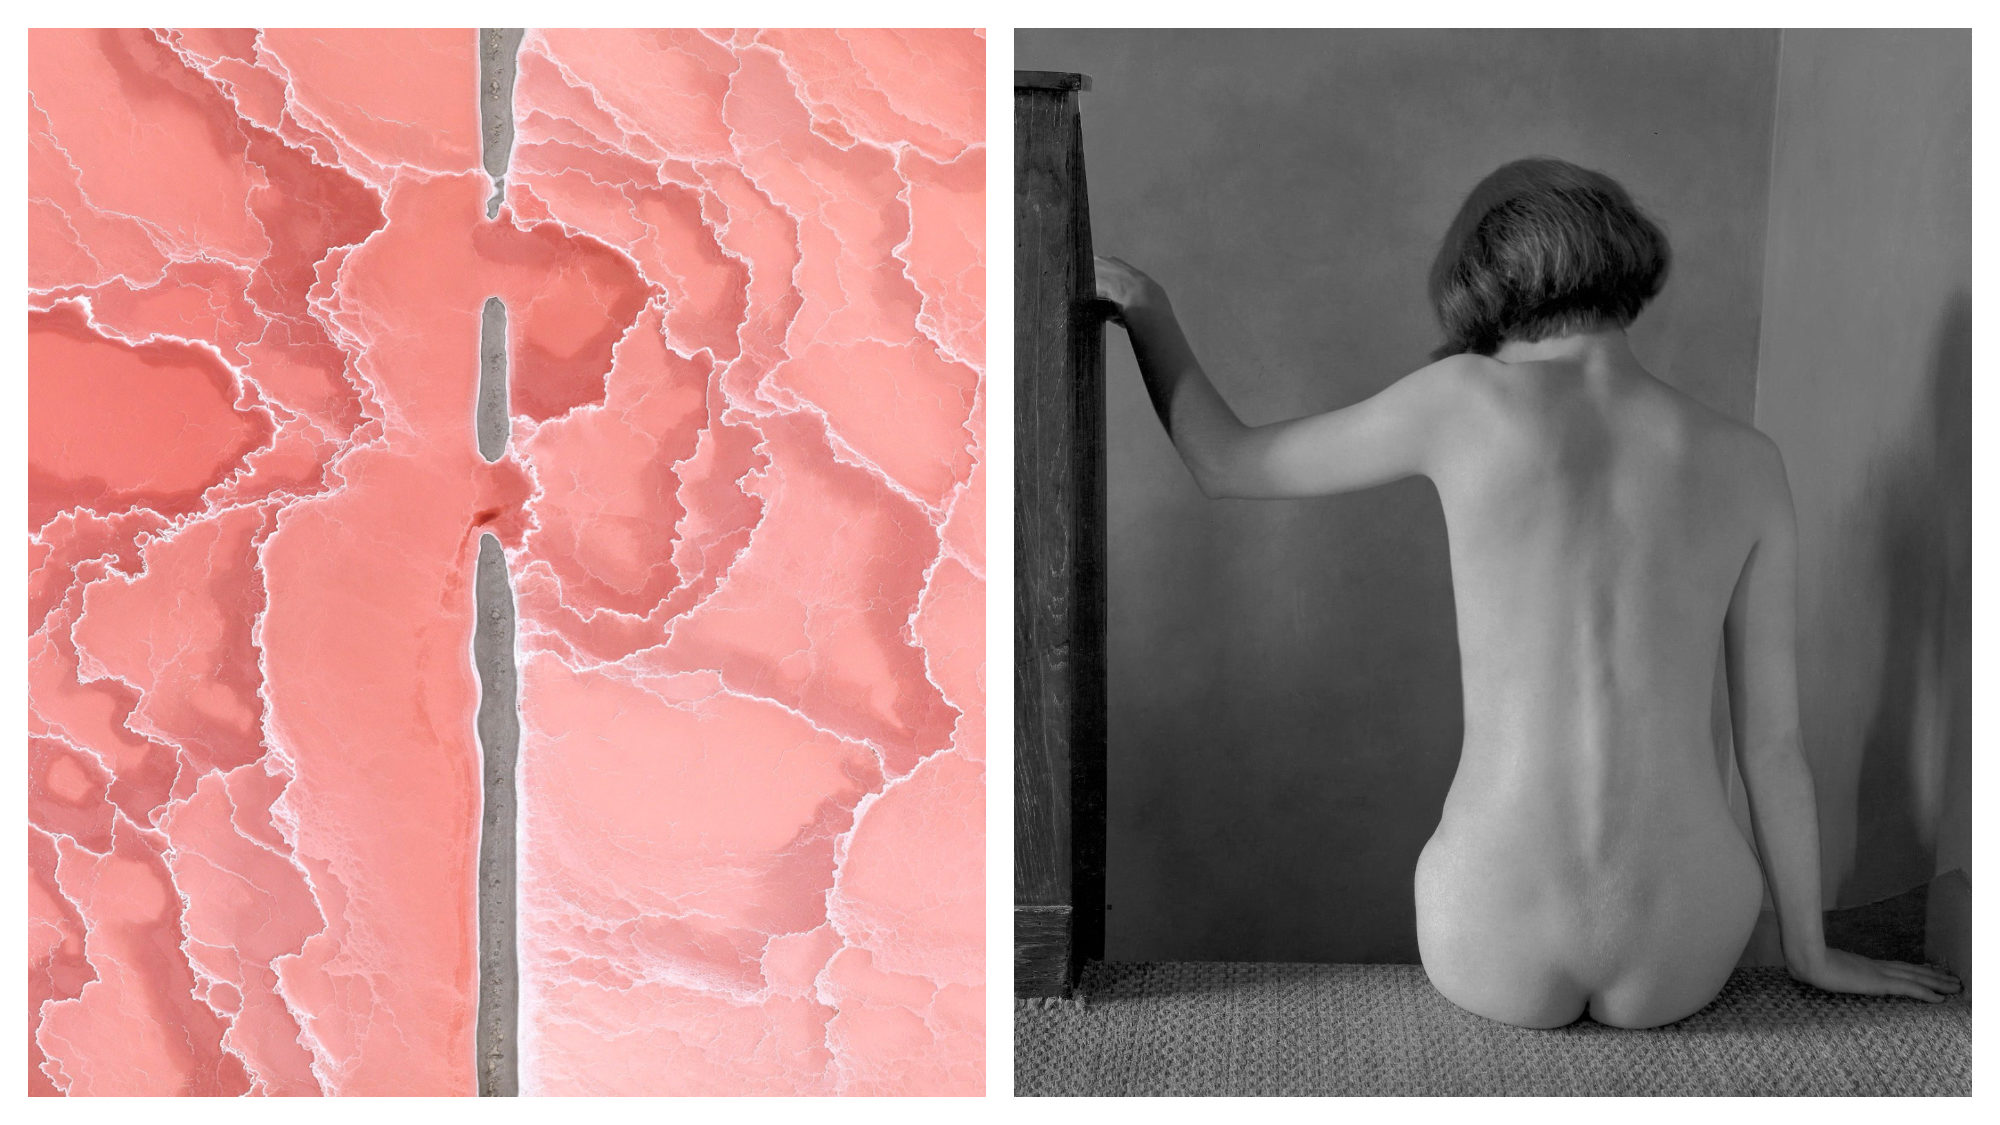 A pink abstract work of art at Fotofever (left) and a black and white photograph of a naked woman's back as she sits (right).